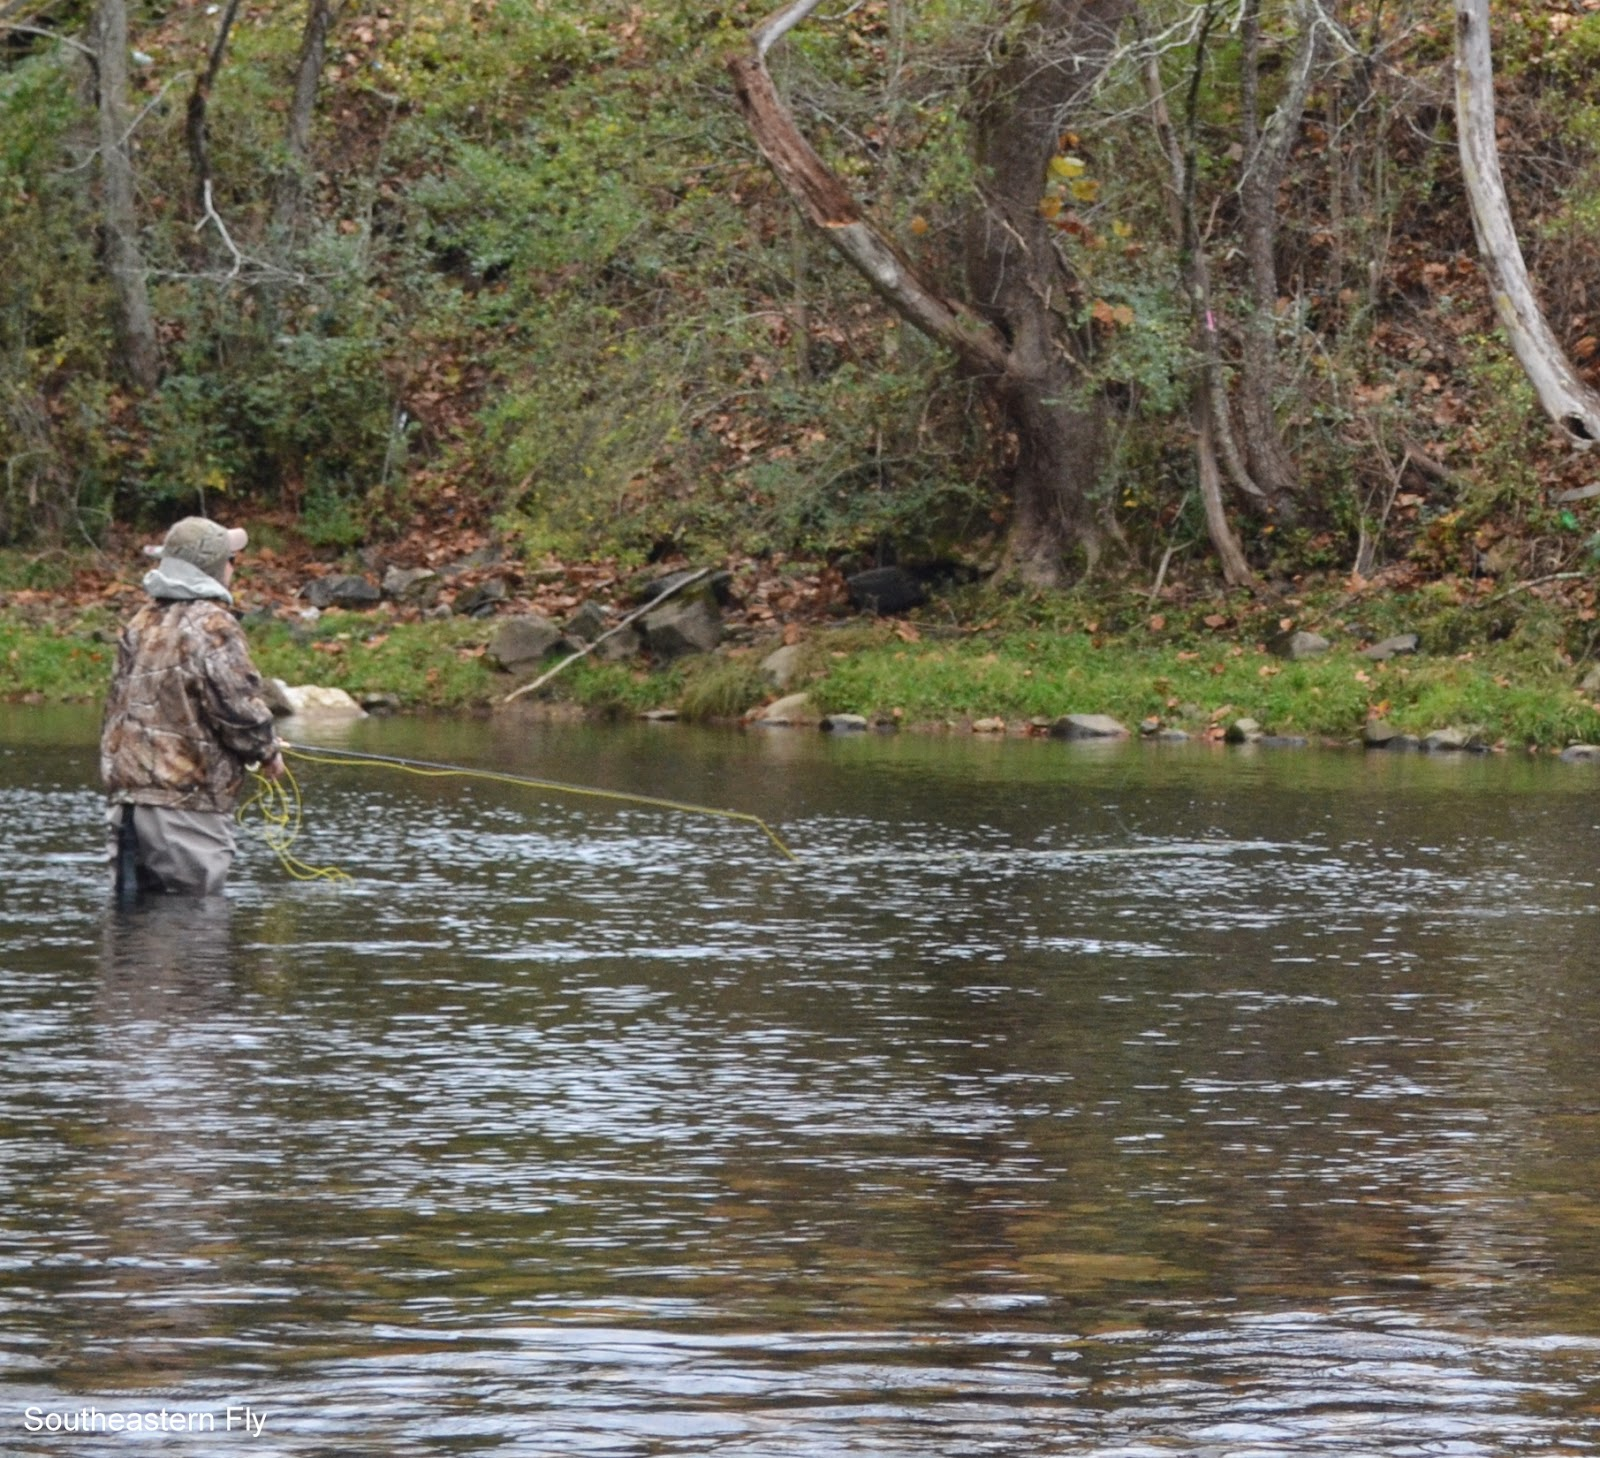 Southeastern fly fly fish the watauga river for Watauga river fishing